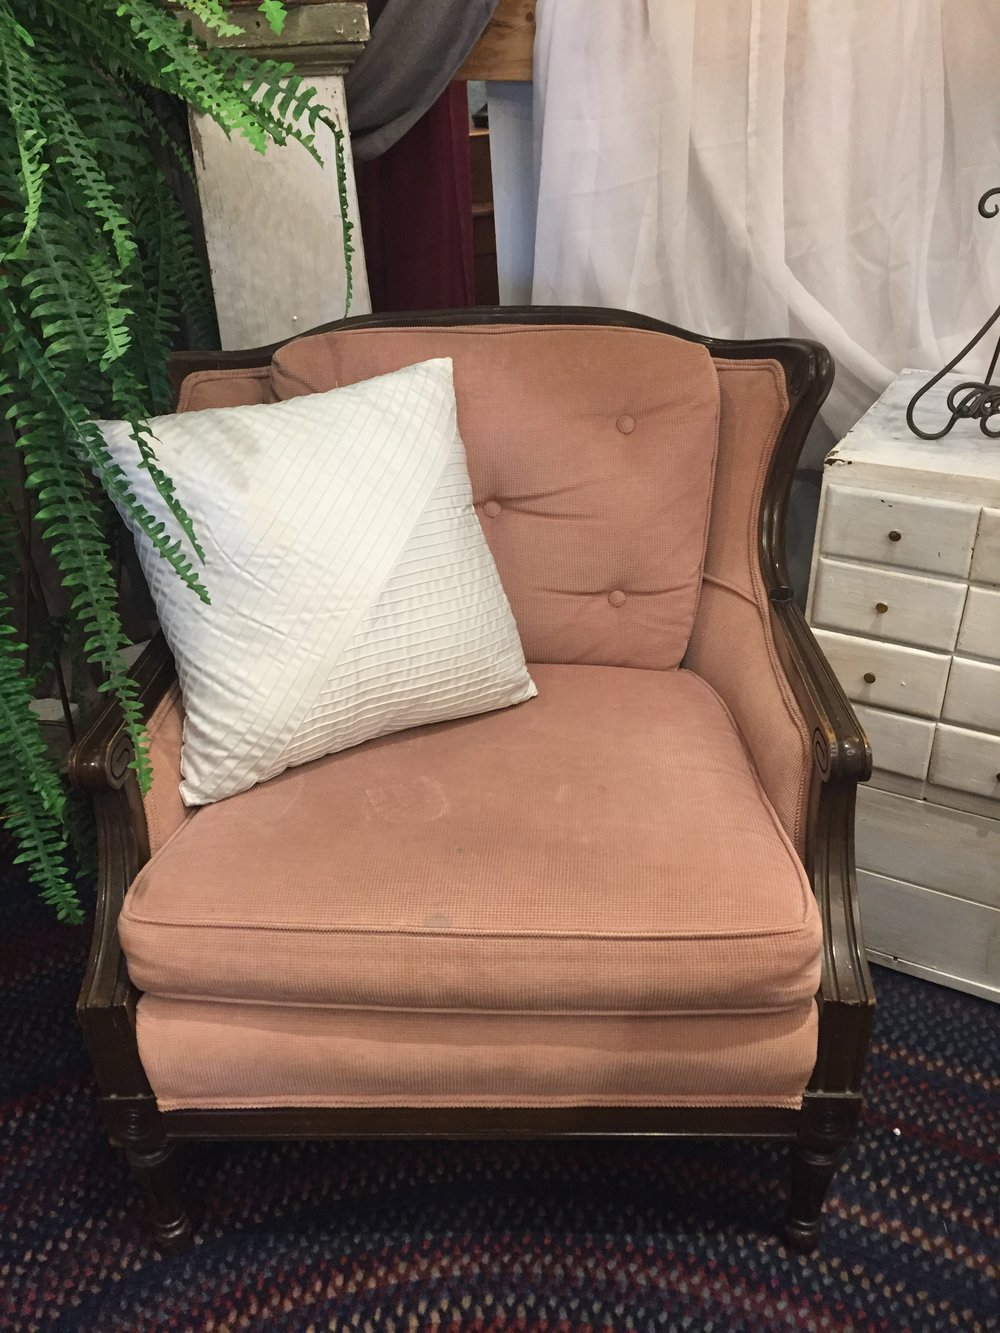 Pink Arm Chair  C0955  -  19132